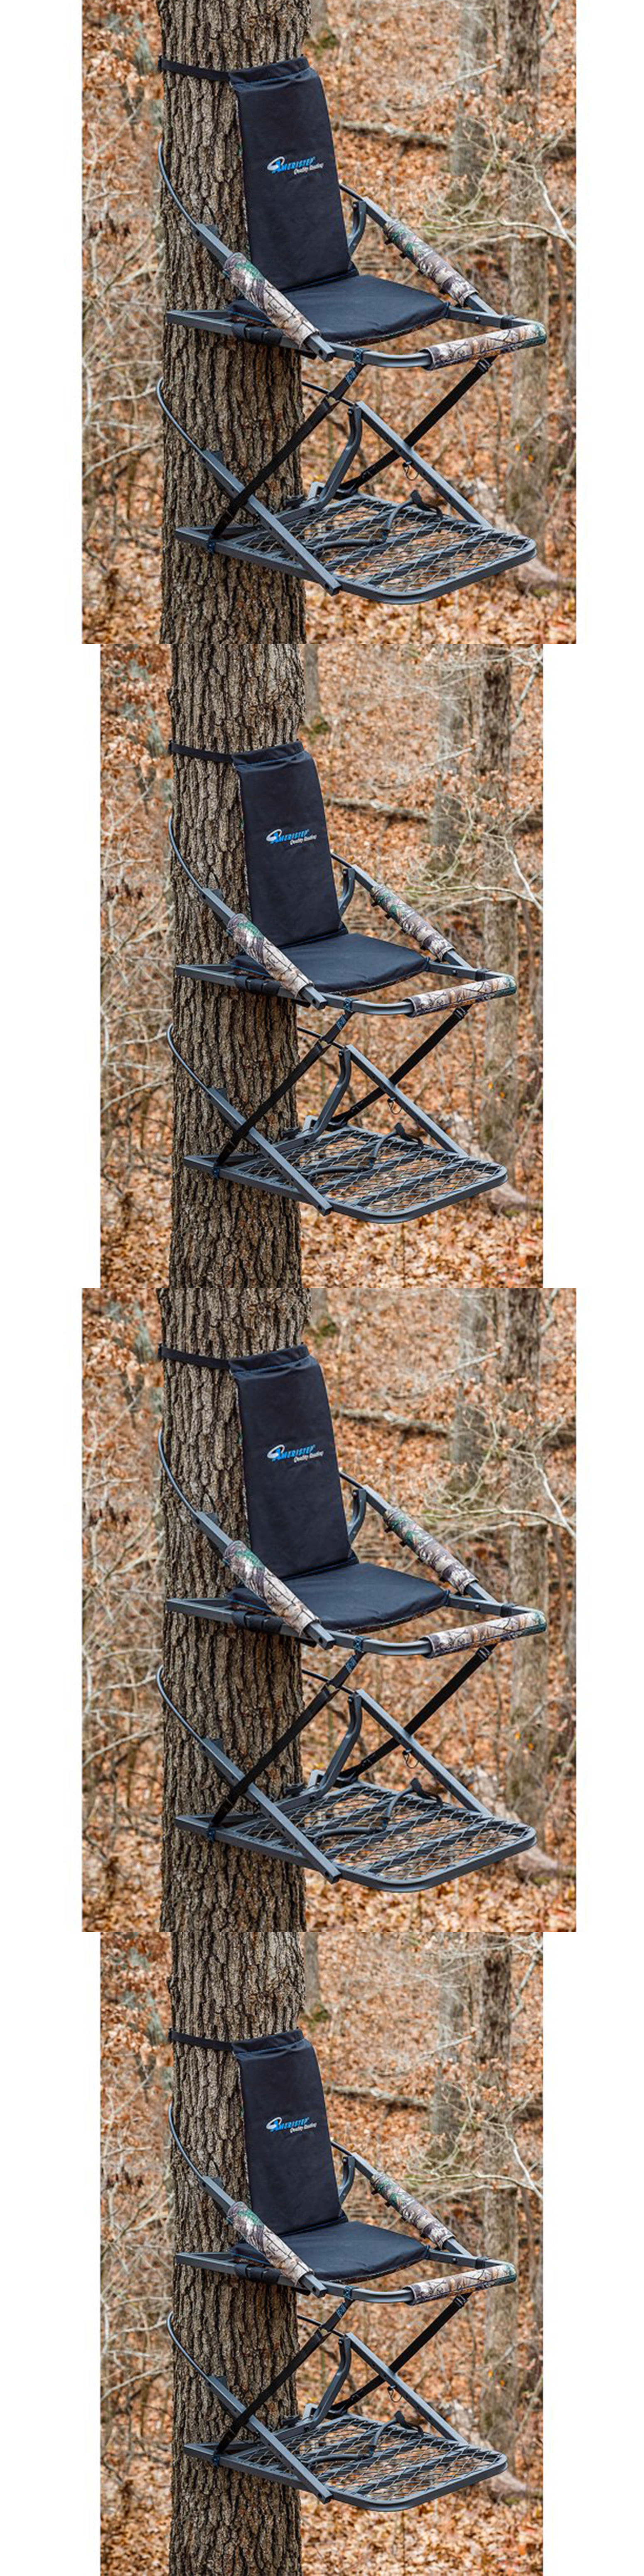 Seats and Chairs Climbing Tree Stand Seat Deer Hunting